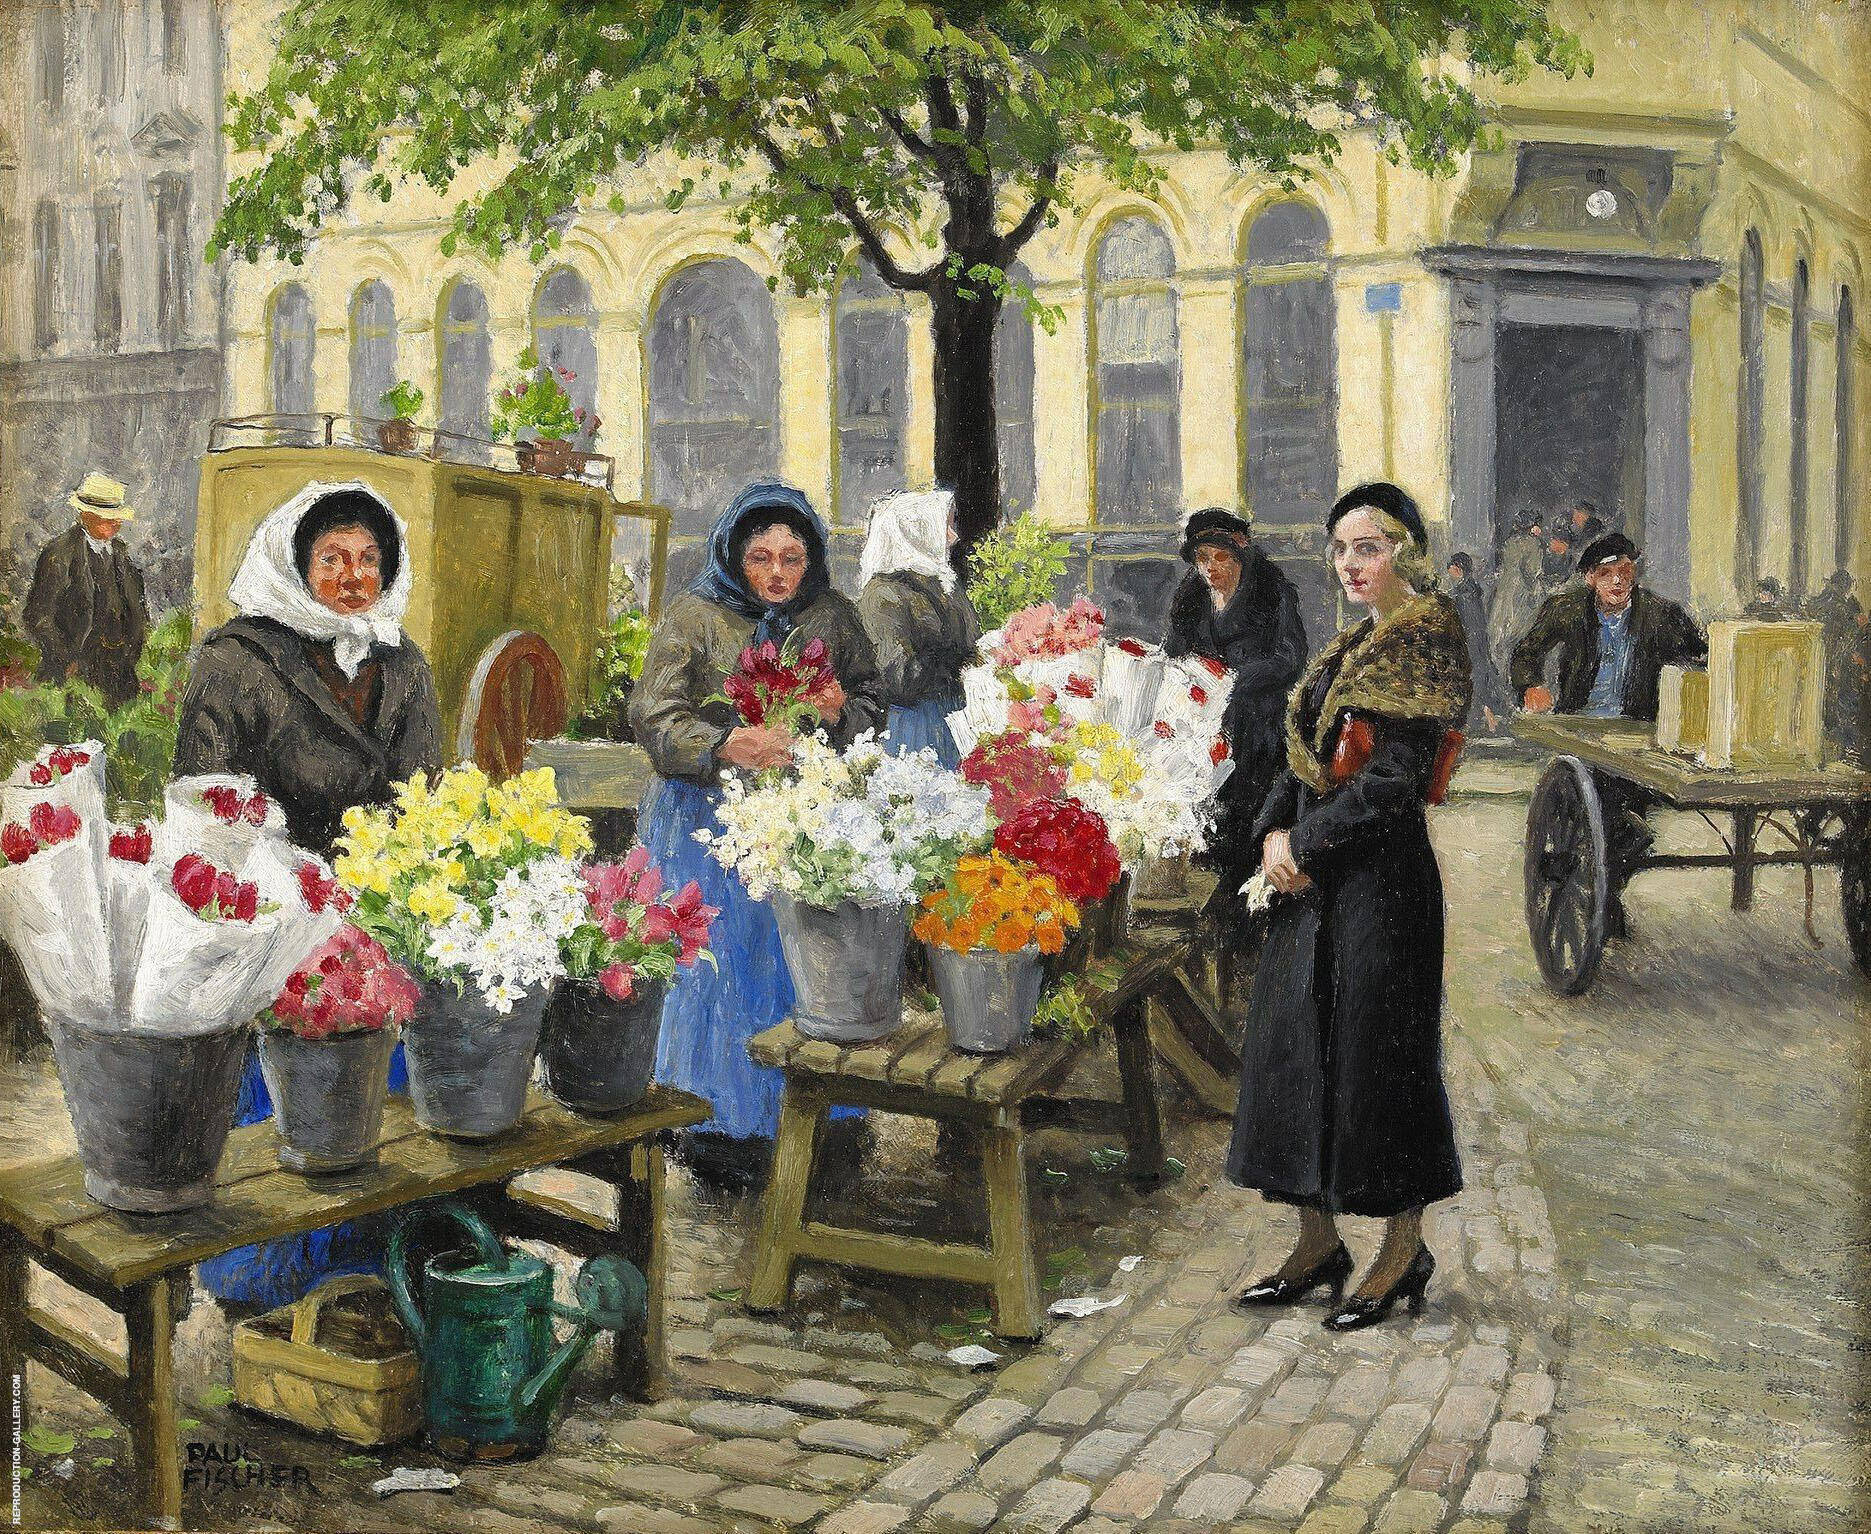 The Flower Market at Hojbro Plads Copenhagen Painting By ...